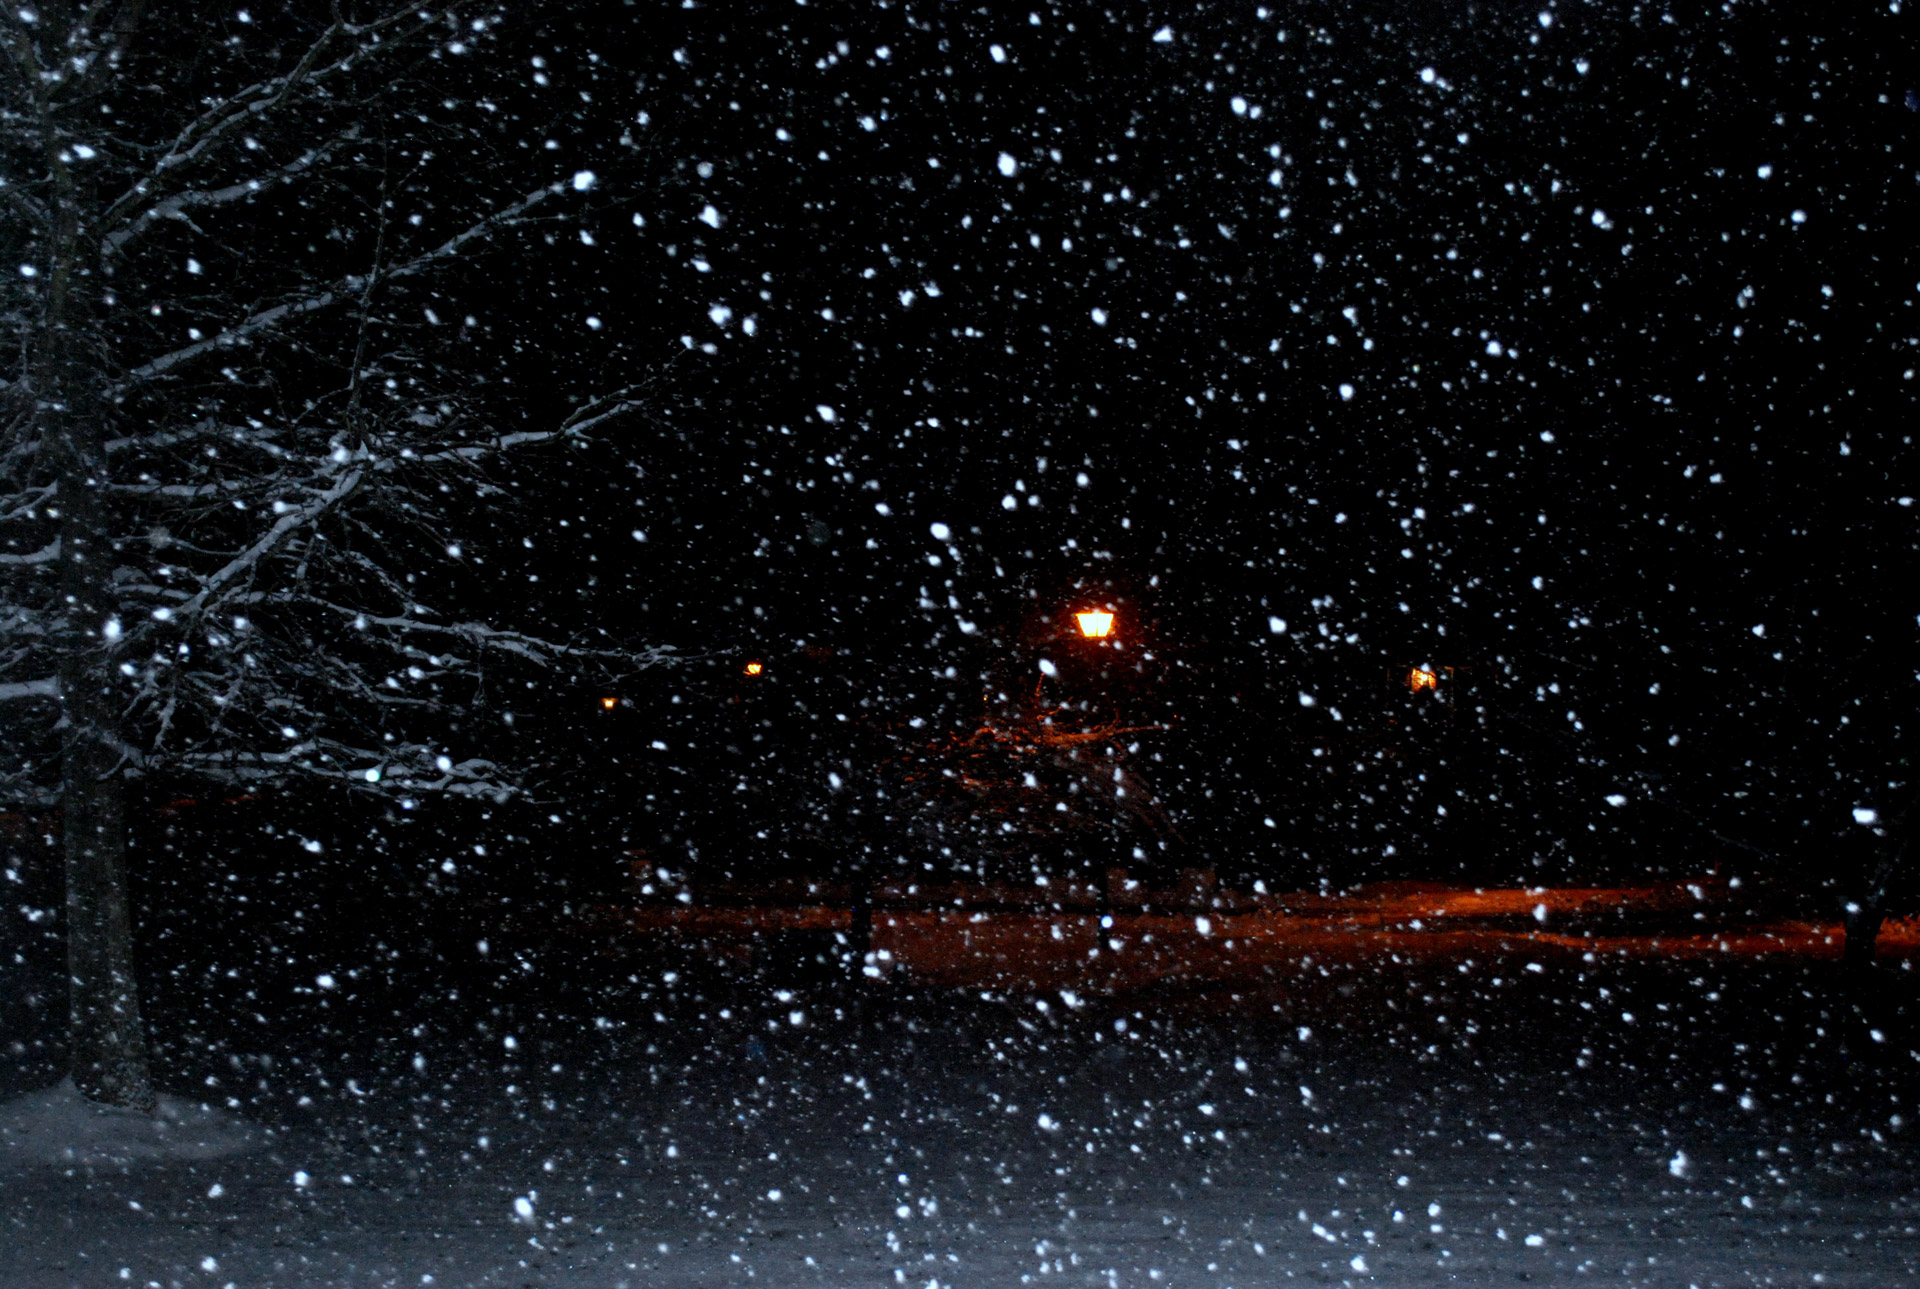 Snow Falling Wallpaper Download Night Snow Free Stock Photo Public Domain Pictures